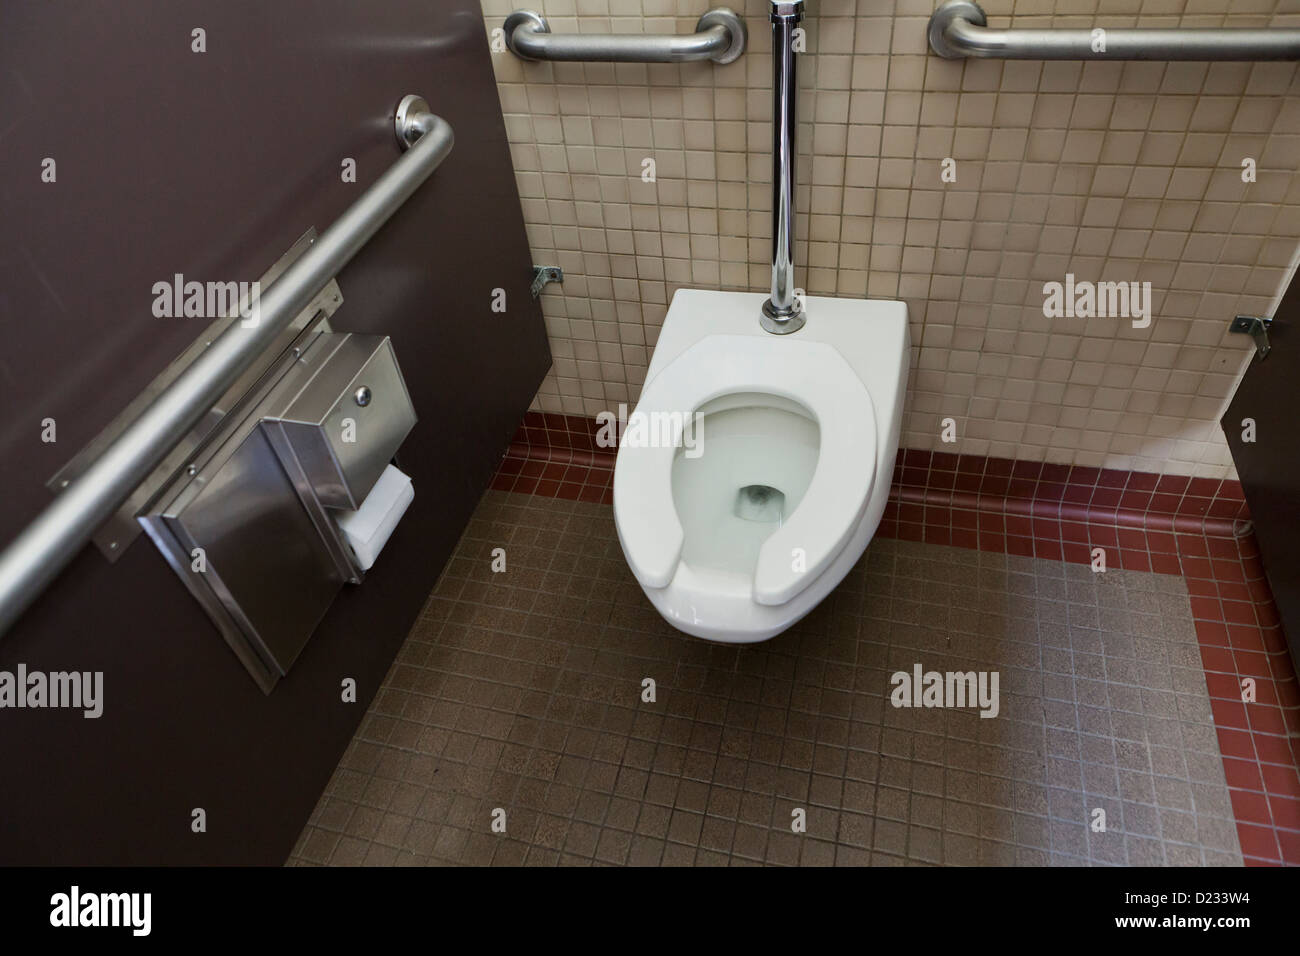 Disabled Access Public Toilet